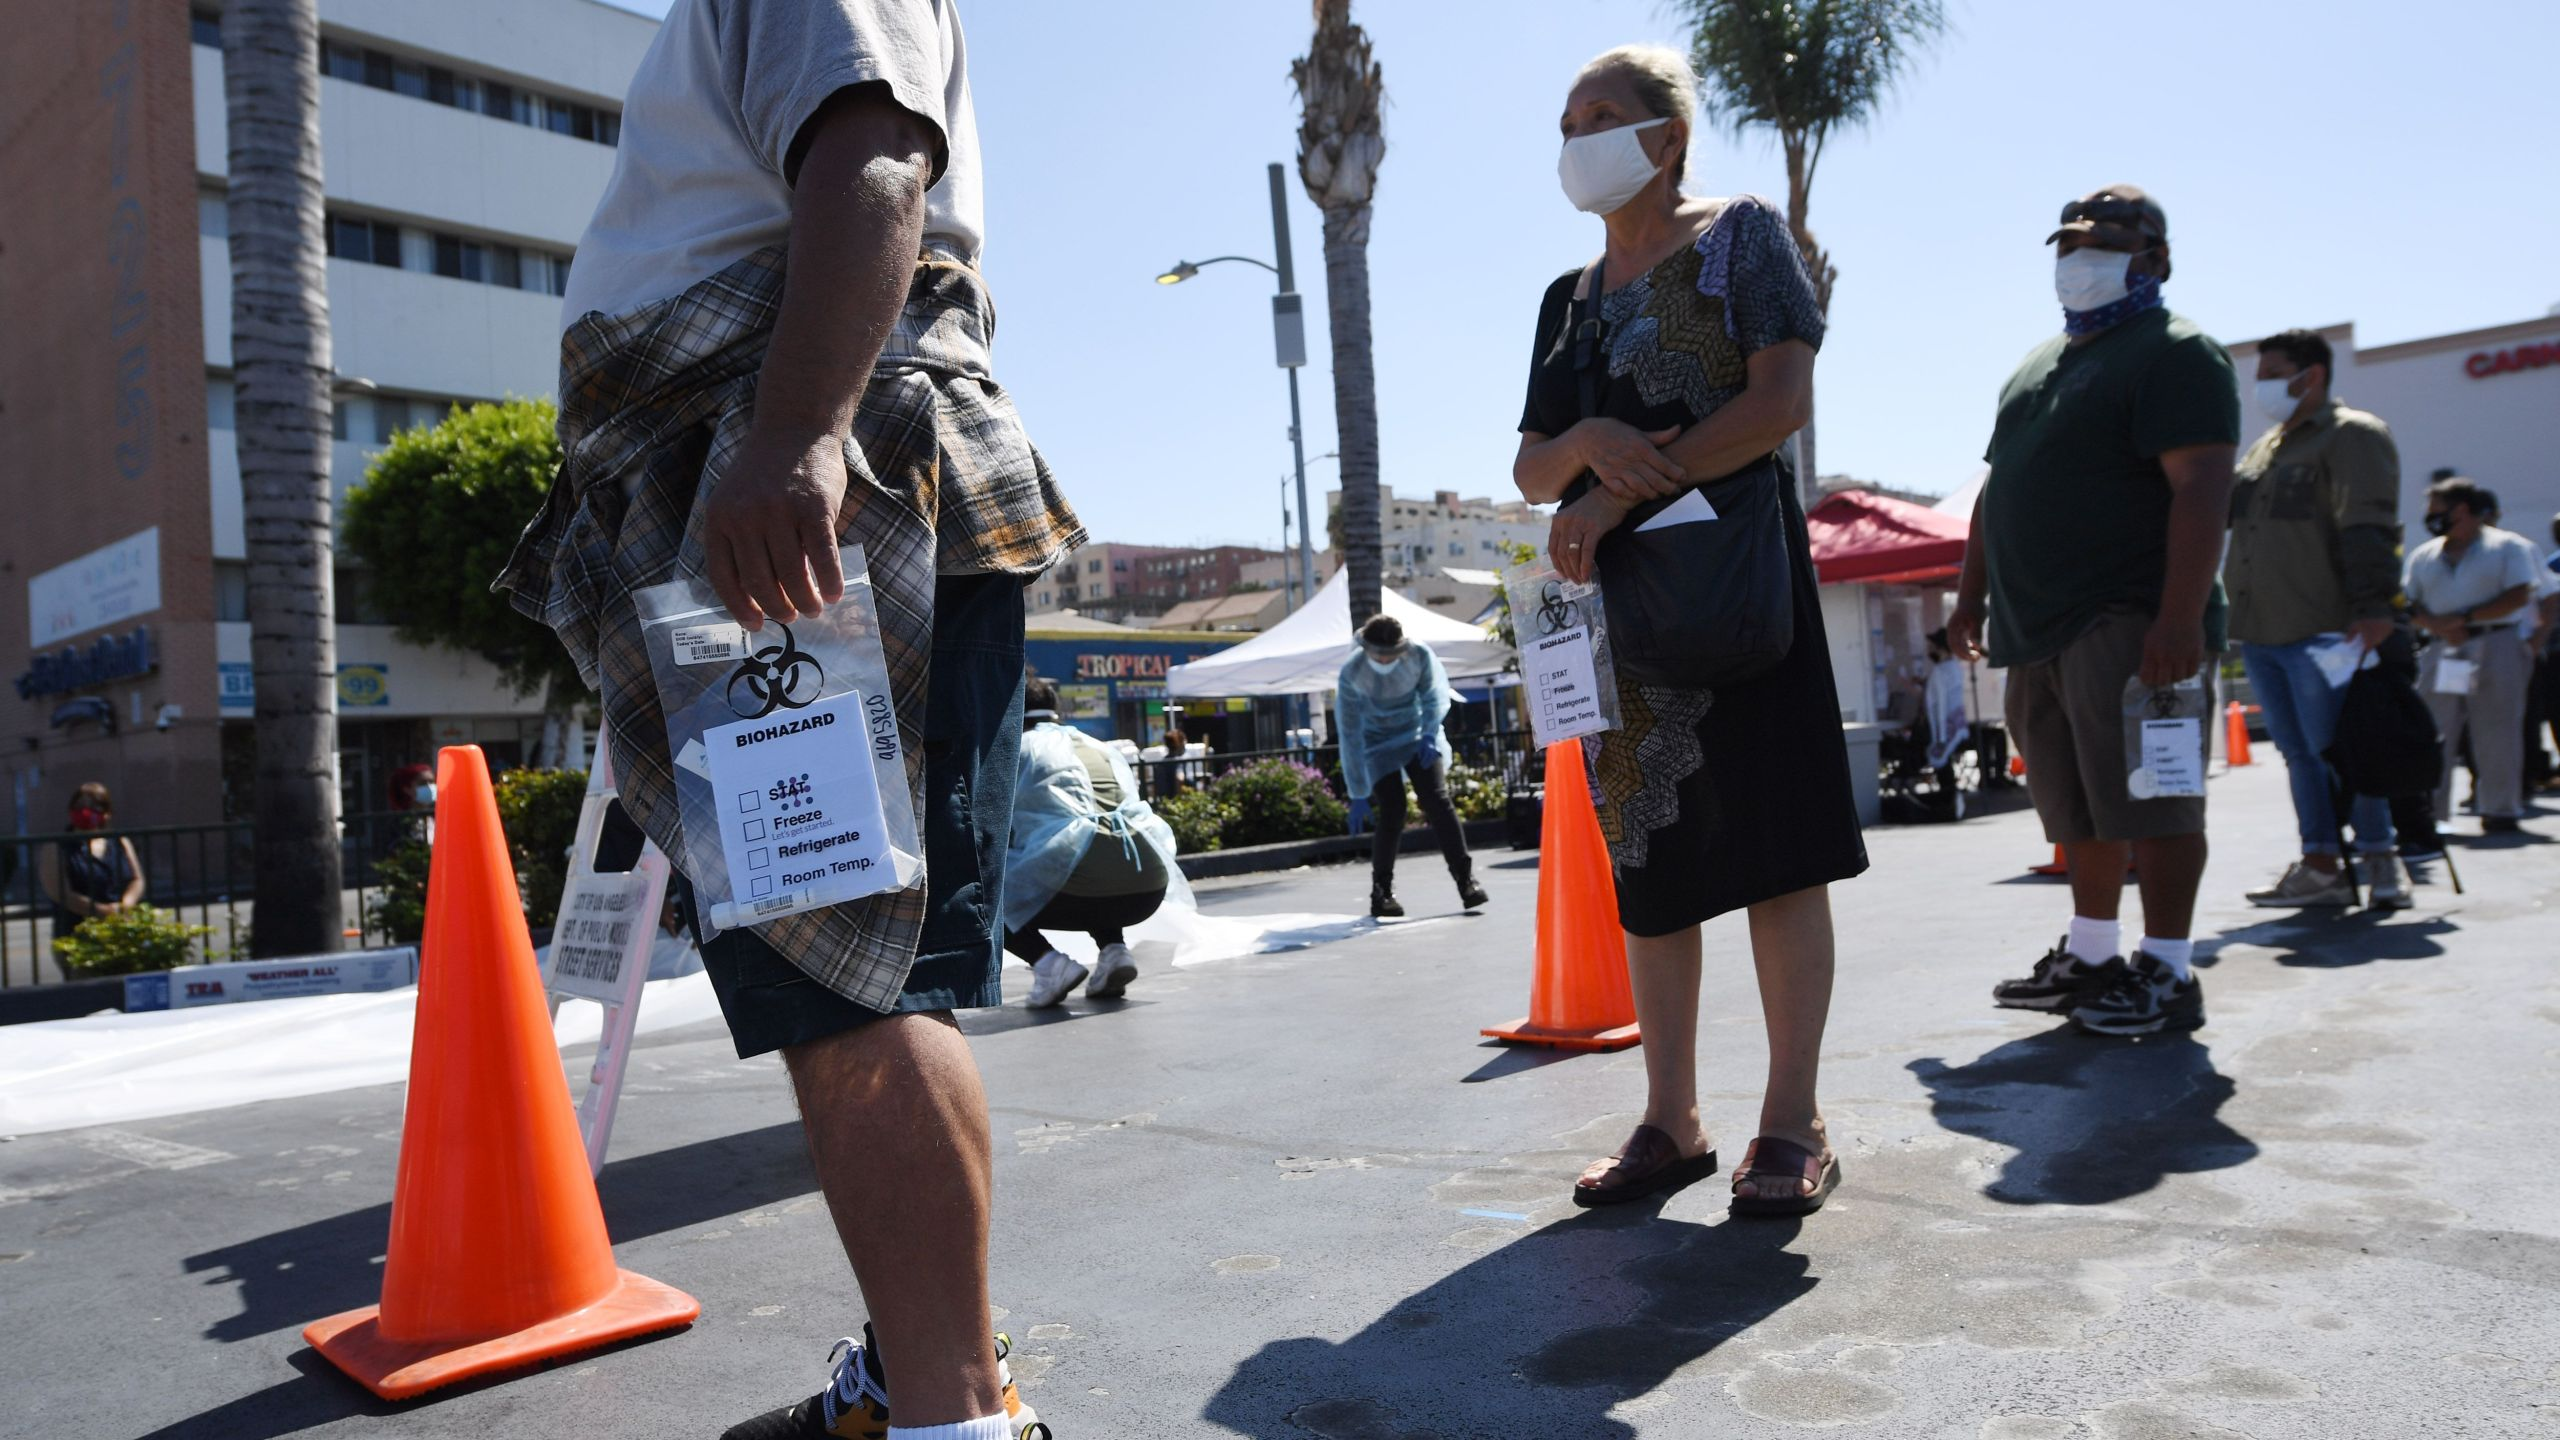 People wait in line at a walk-up coronavirus testing location in Los Angeles on Aug. 10, 2020. (ROBYN BECK/AFP via Getty Images)